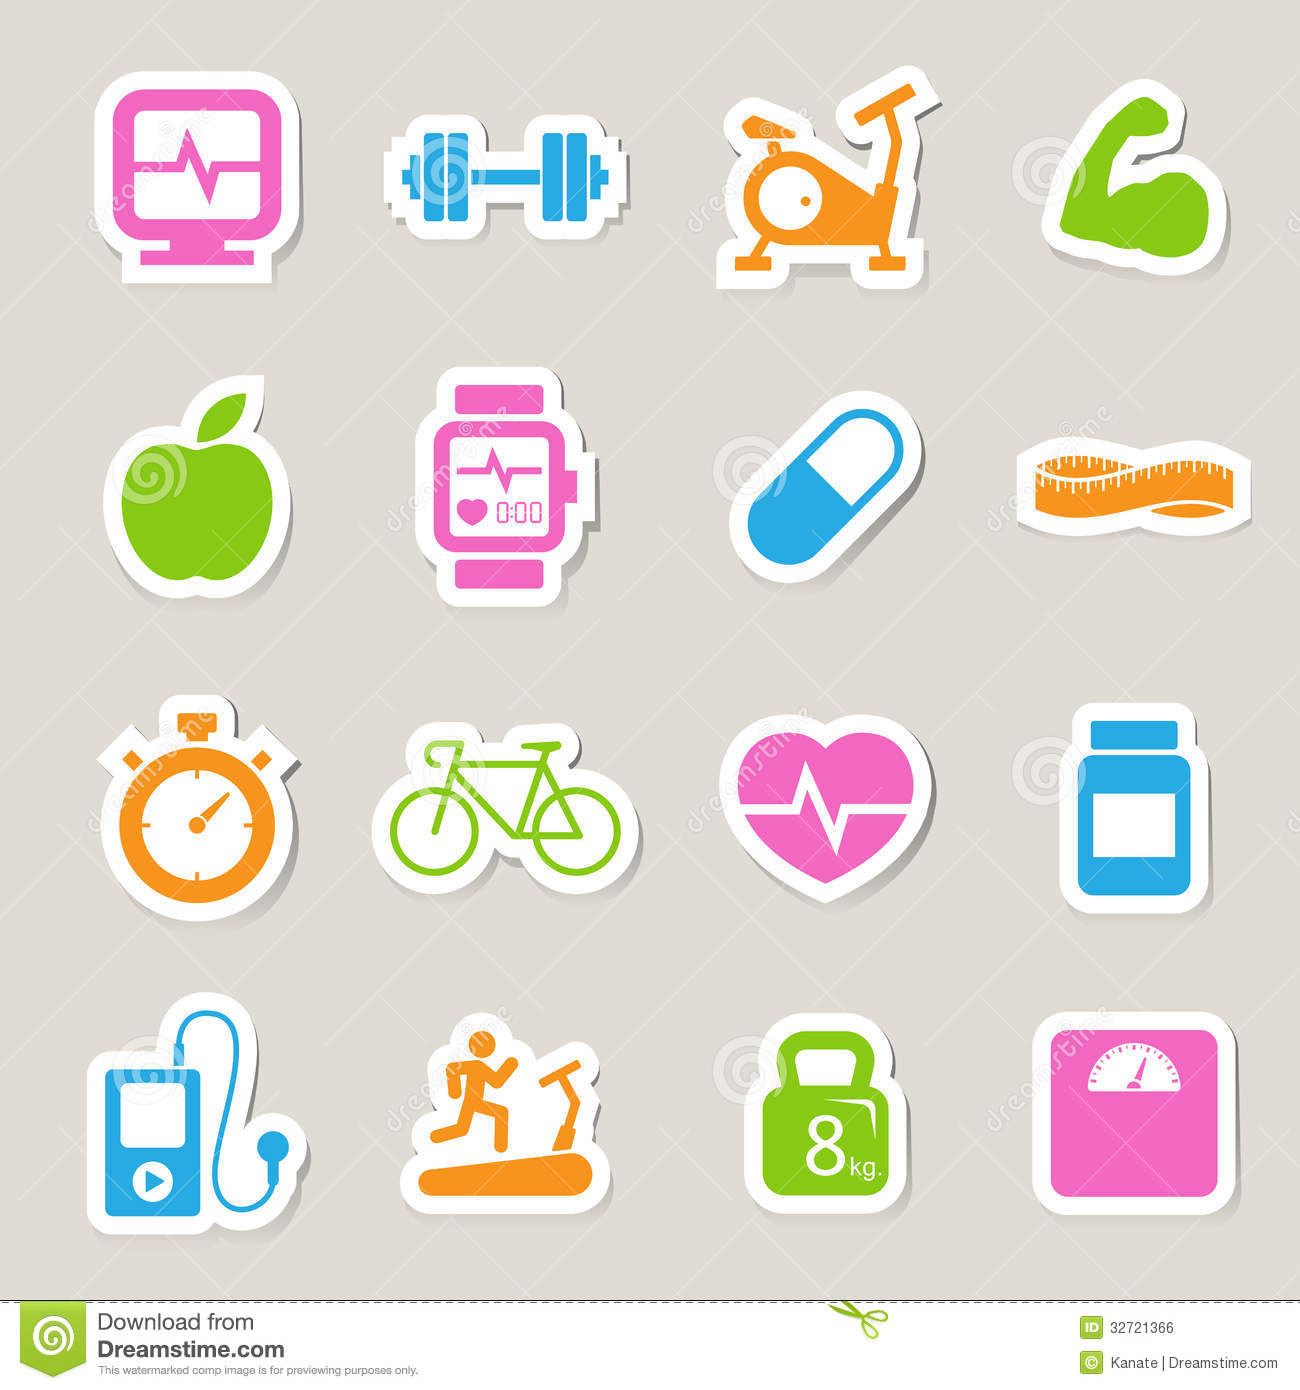 Fitness And Health Icons. Royalty Free Stock Image - Image: 32721366